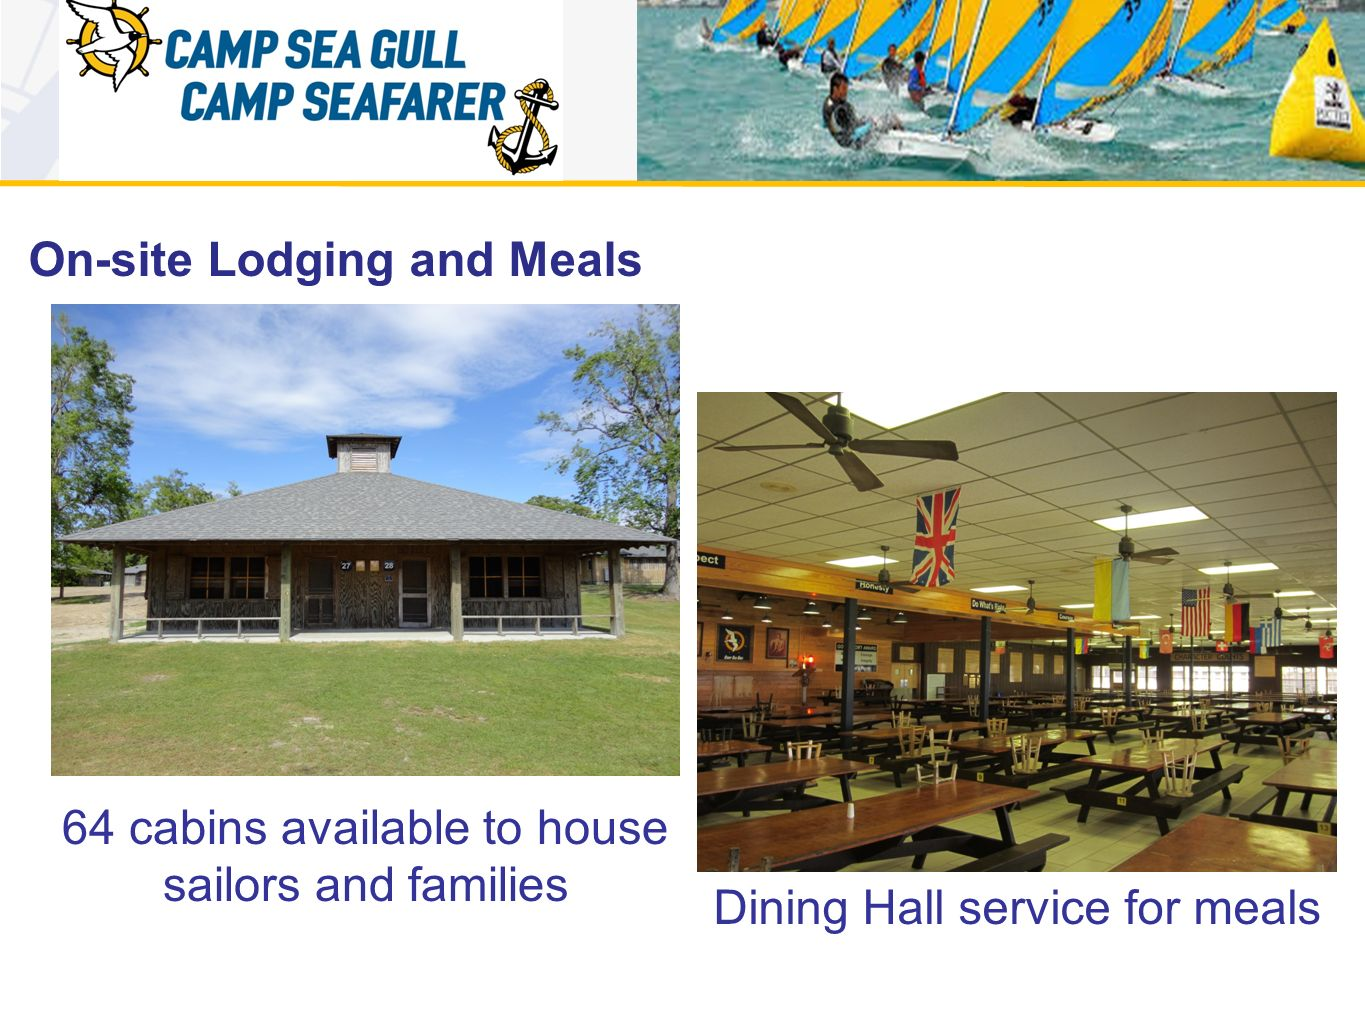 On-site Lodging and Meals